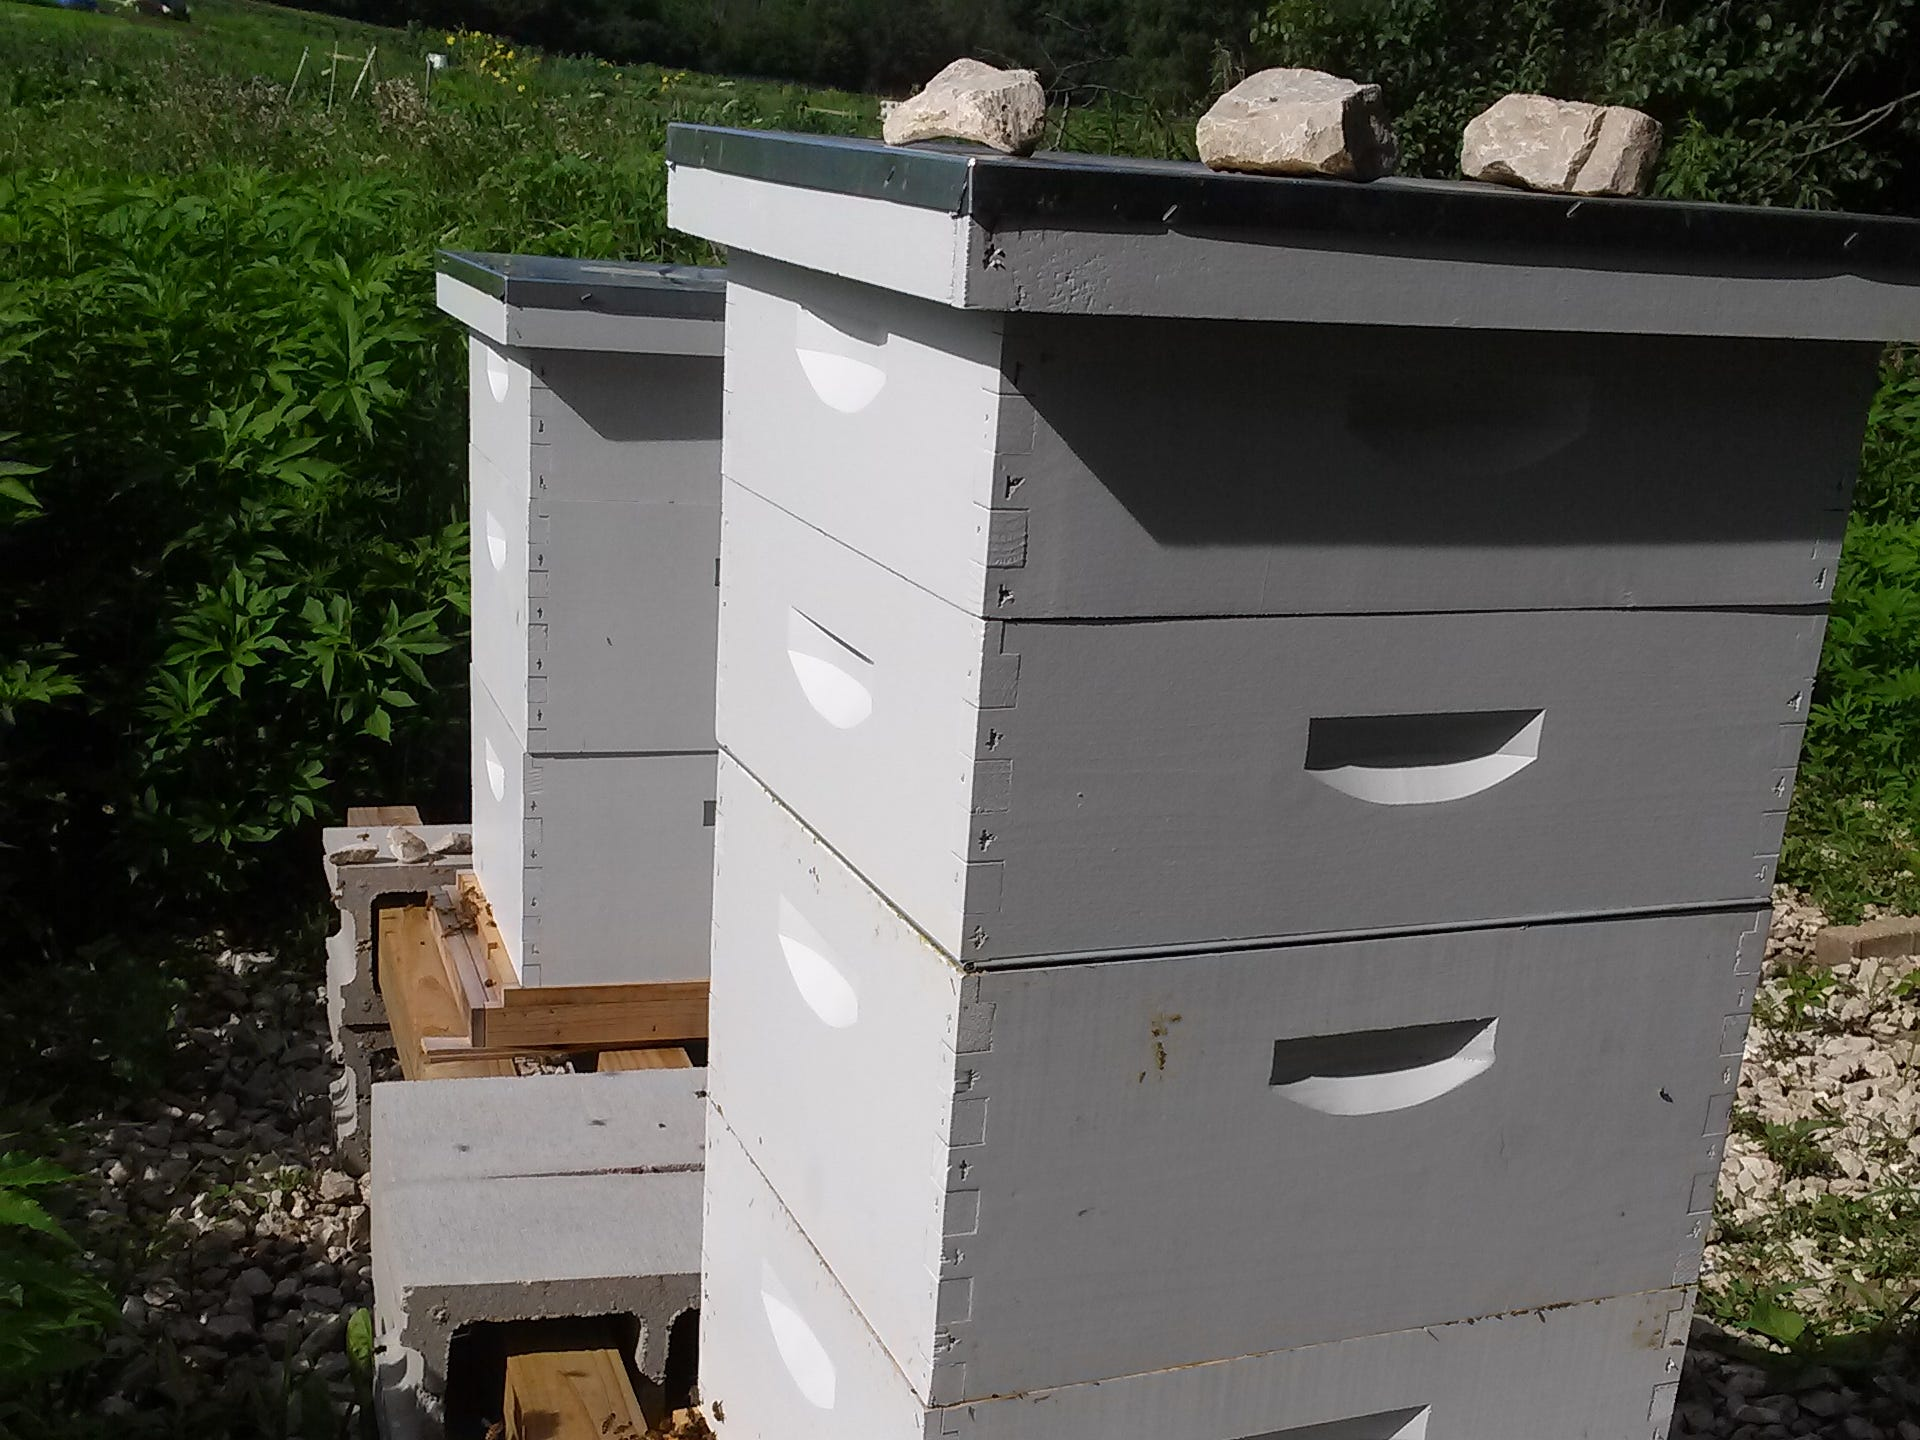 """This photo was taken after a swarm. Beekeeper Gemma Tarlach left Hive 2, on the left, alone because this was the delicate period of re-queening and if the bees are disturbed, they may blame the new queen and kill her (bees don't mess around). Hive 1, on the right, was growing and needed more space so she added a couple of """"honey super"""" boxes (on top of the two deeper brood boxes) to give them more space and also encourage them to stop thinking about swarming and instead spend their time making honey."""